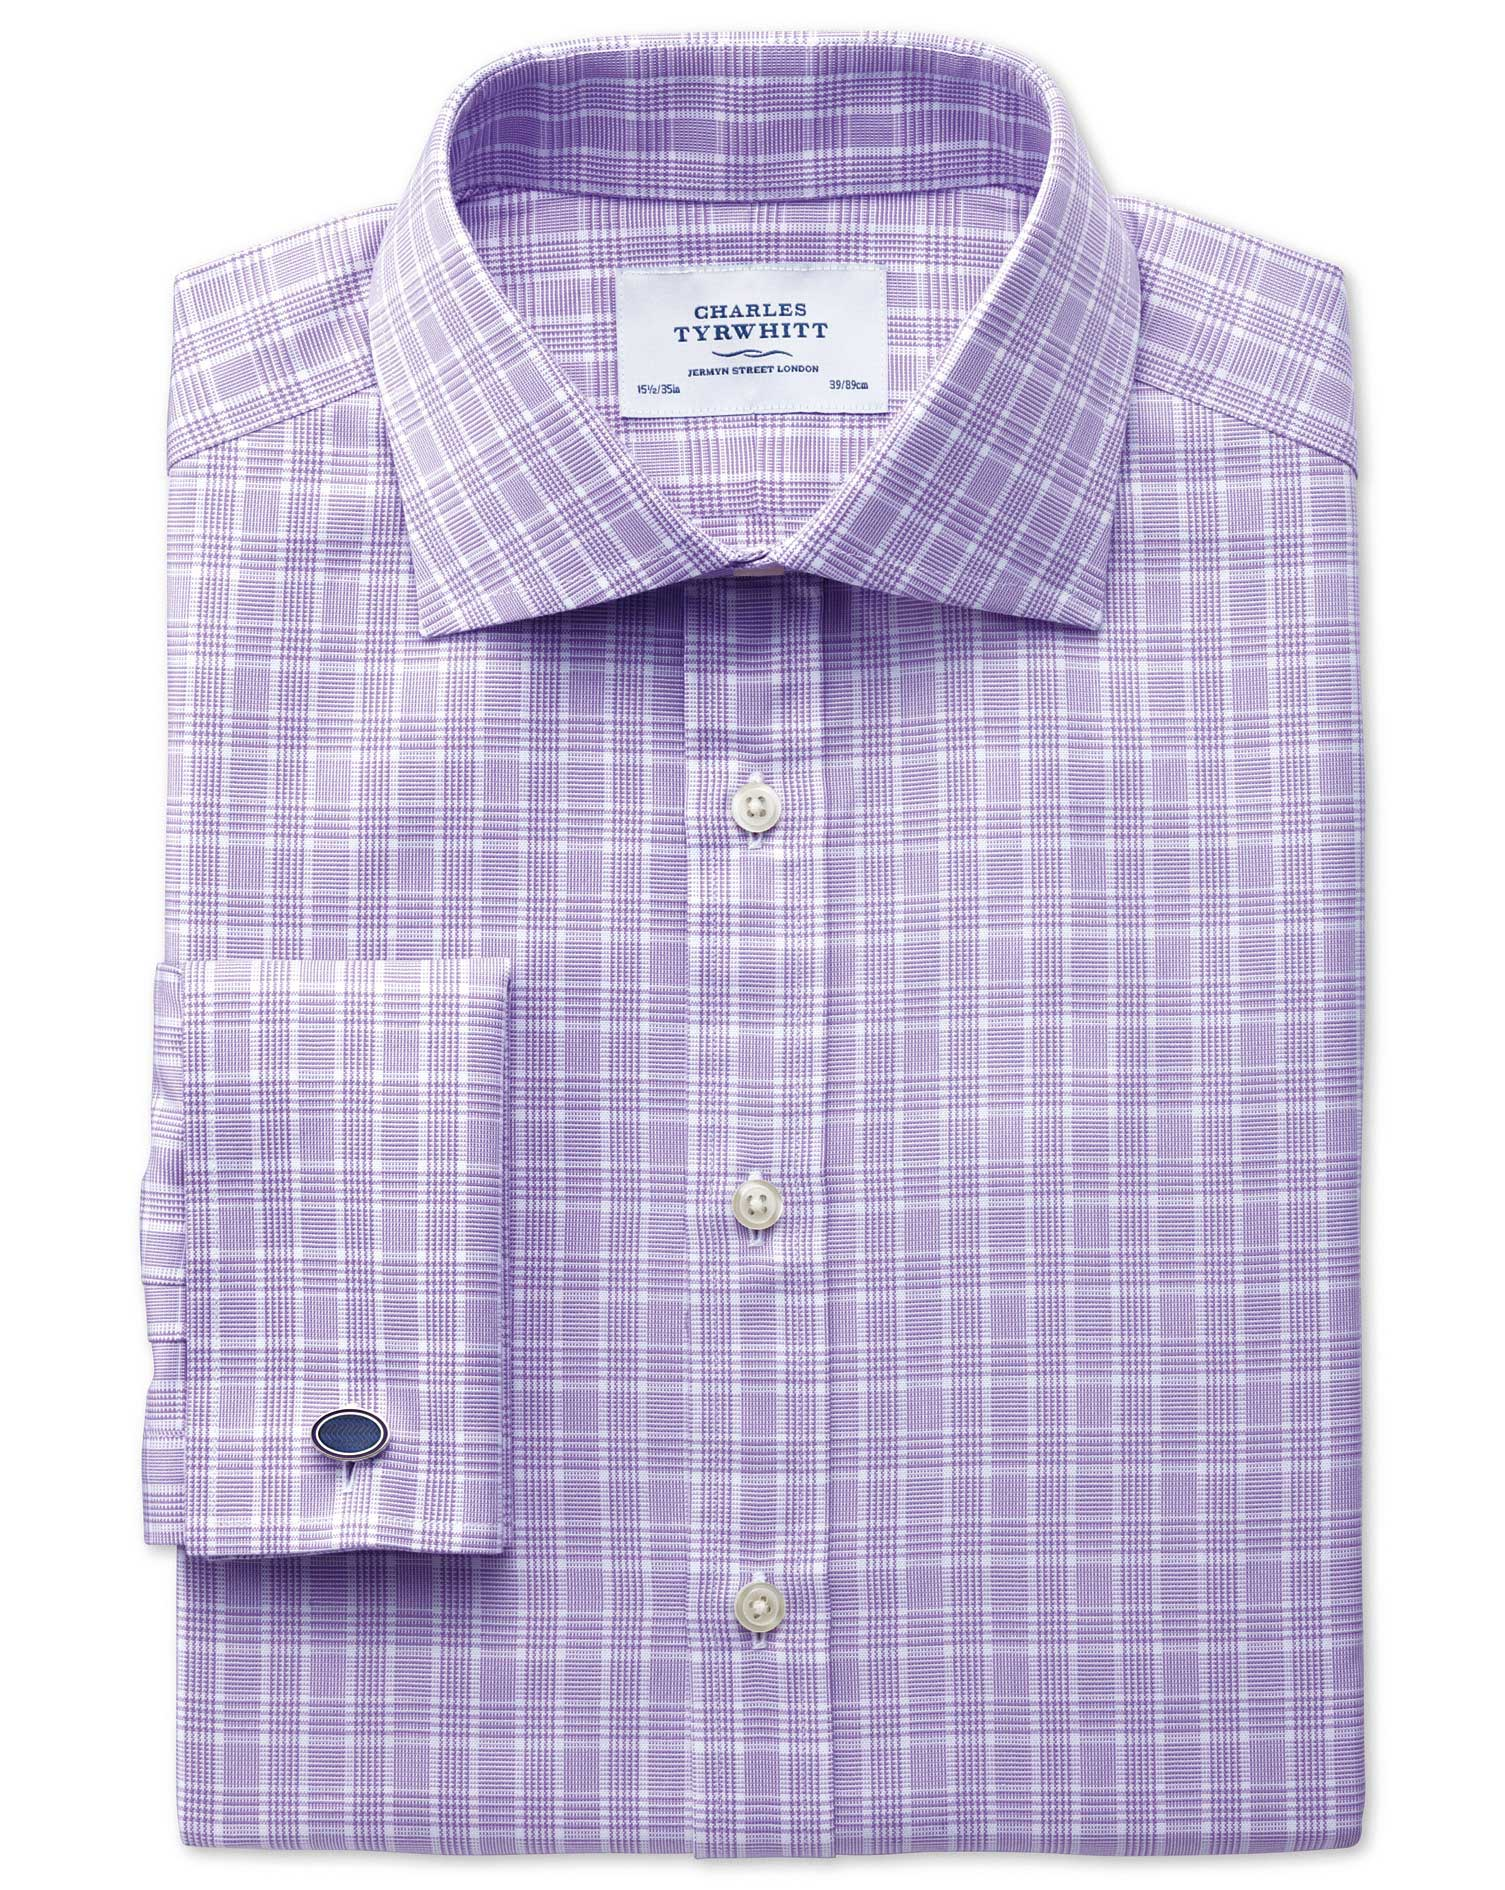 Slim Fit Prince Of Wales Basketweave Lilac Cotton Formal Shirt Single Cuff Size 16/38 by Charles Tyr